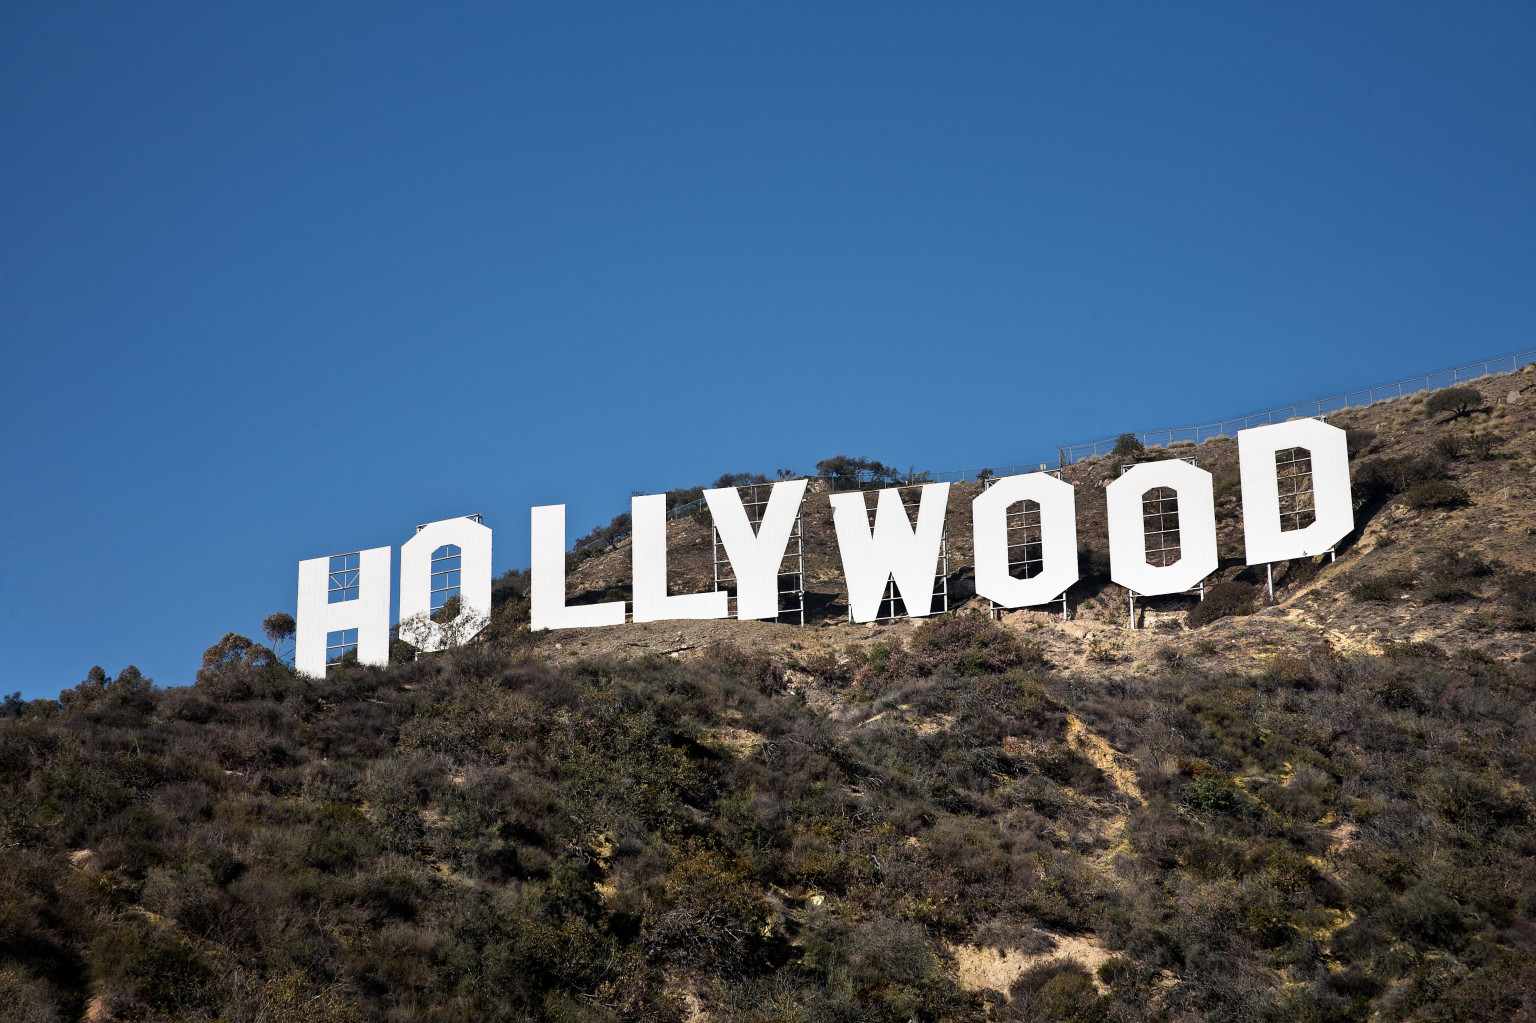 Http Www Huffingtonpost Com 2013 07 24 Hollywood Reporter Philanthropy Issues N 3646438 Html